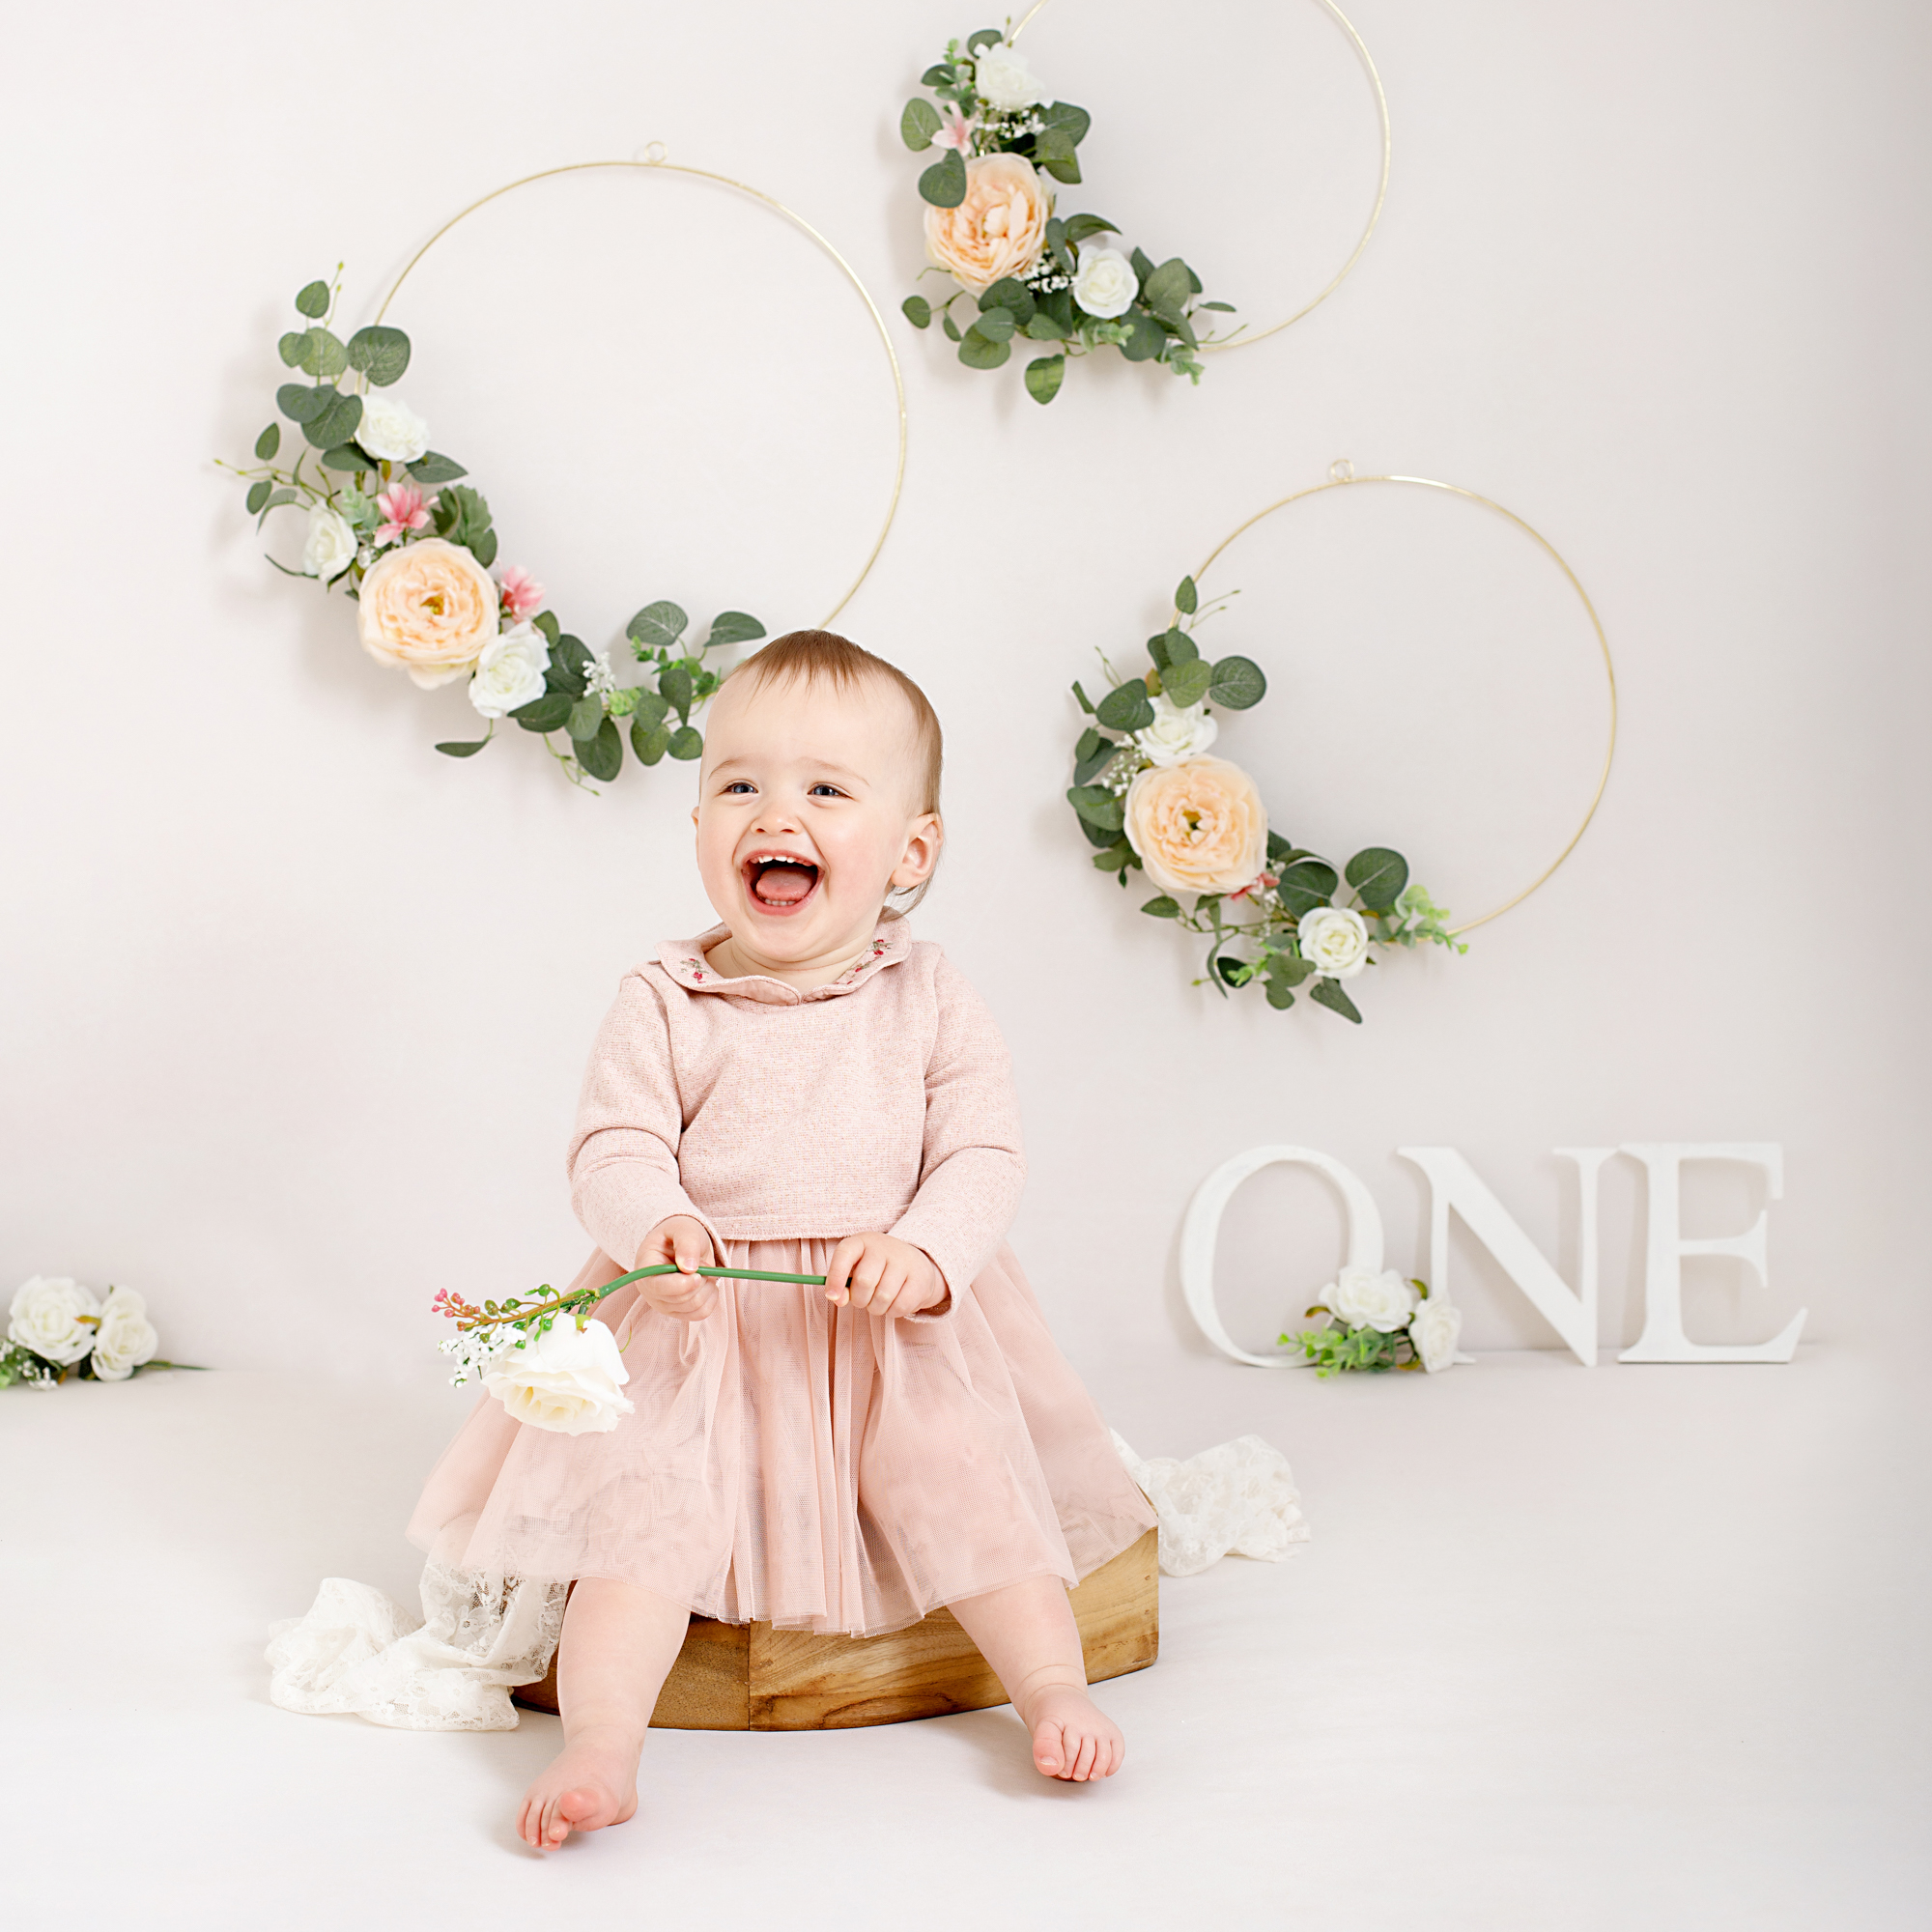 little girl celebrating her first birthday with a photoshoot in Kent